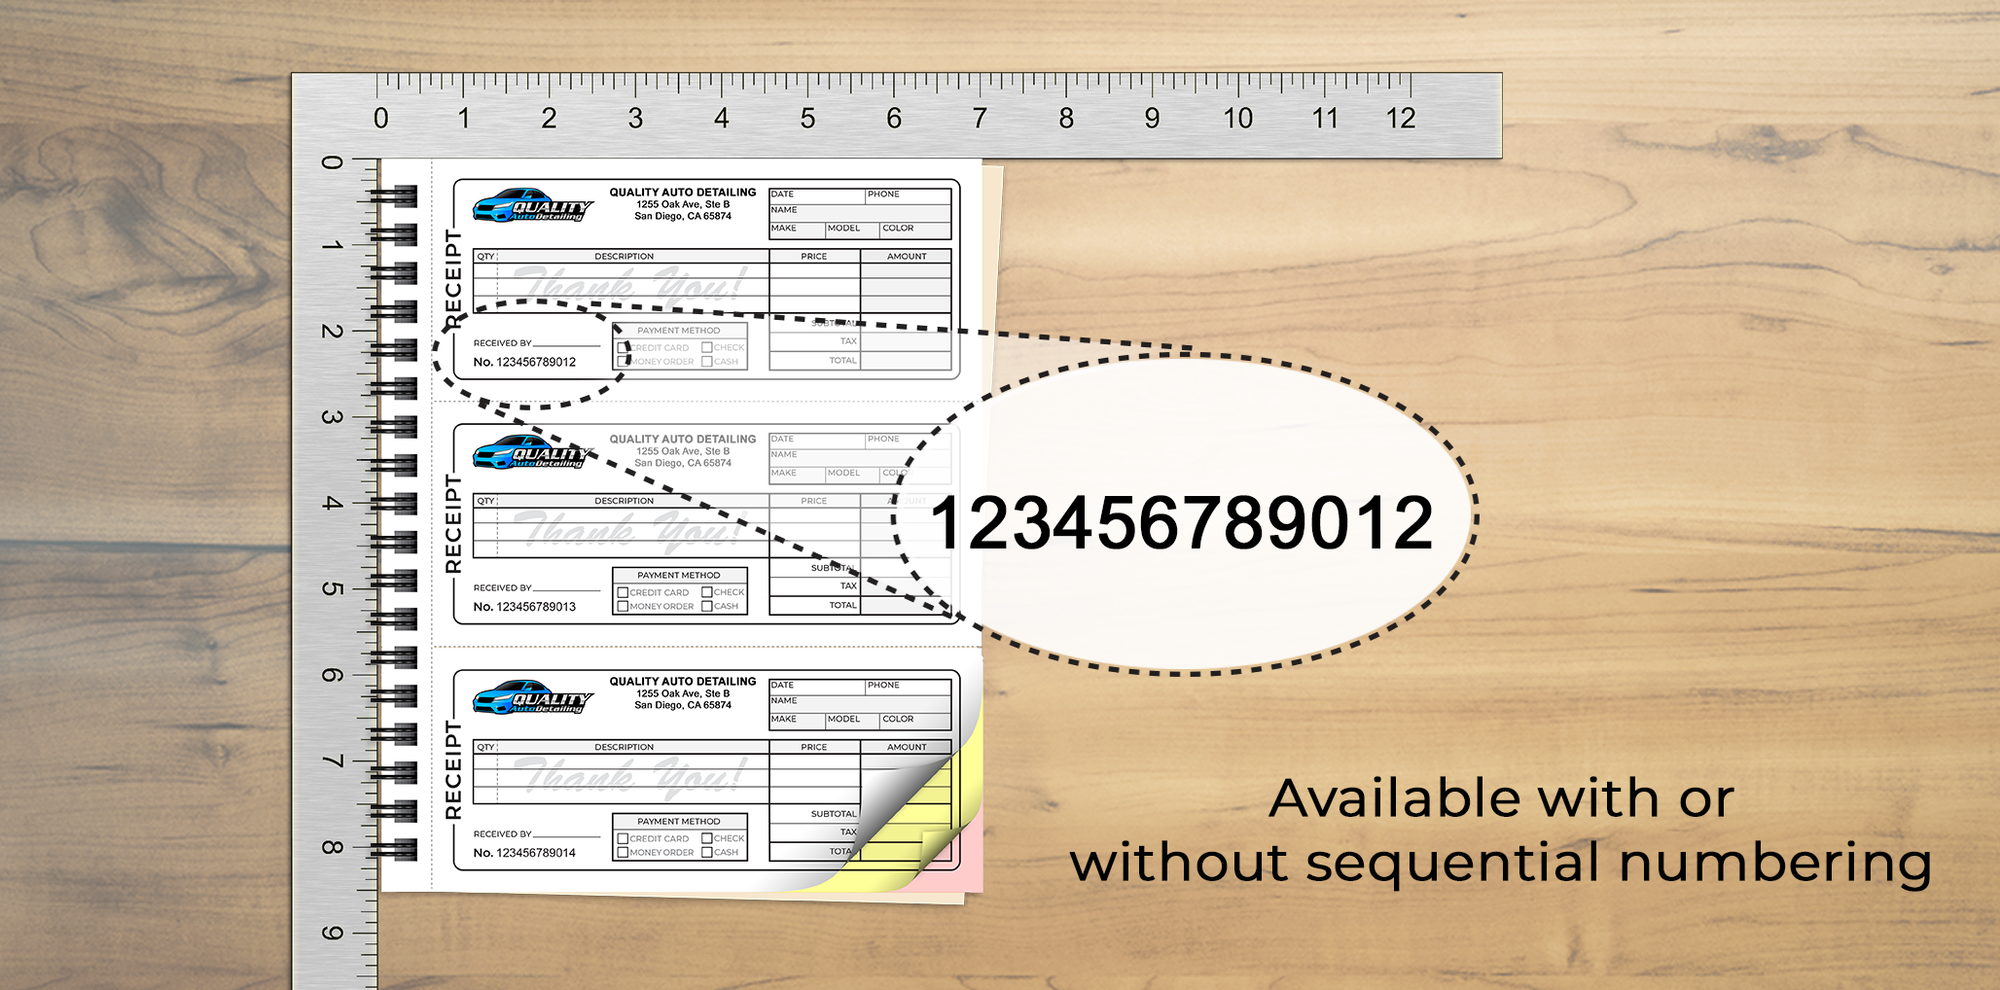 https://printpps.com/images/products_gallery_images/banner2-top-view-8_5x11-3-part-size-ruler38.png